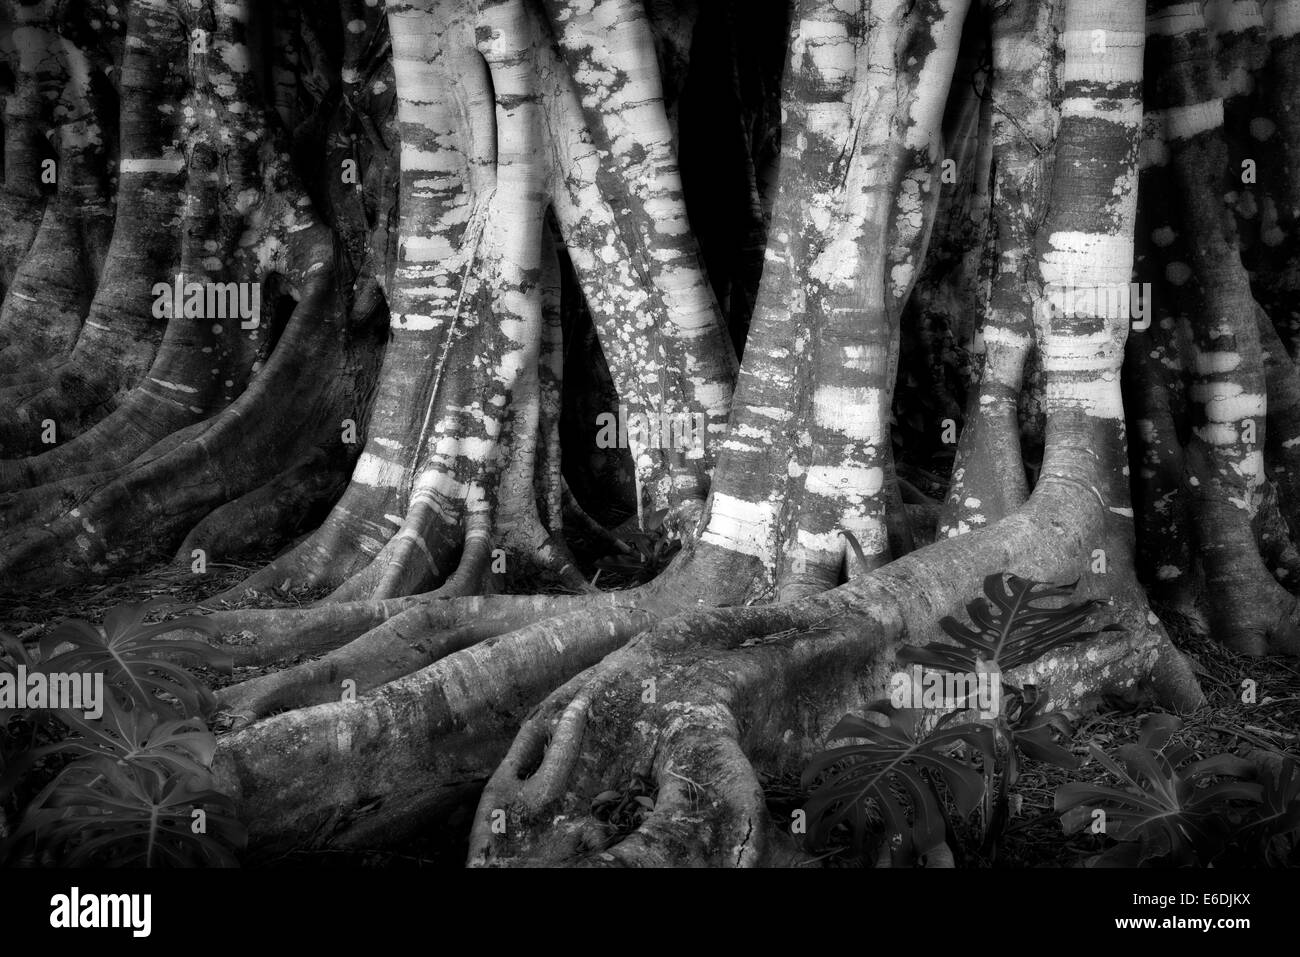 Banyon de troncs d'arbre. Lanai, Hawaii Photo Stock